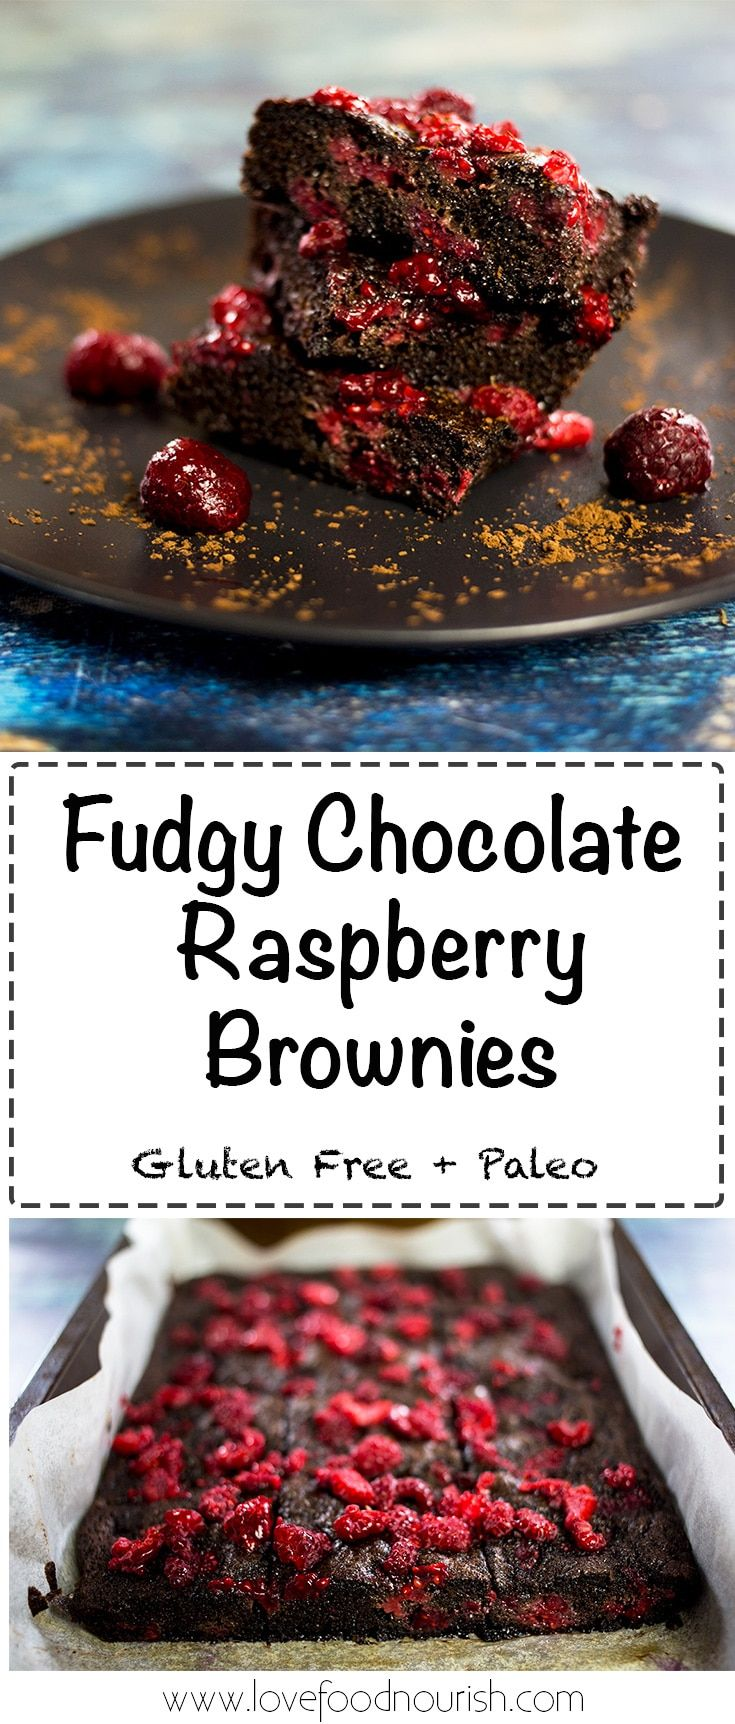 Chocolate Raspberry Brownies (Gluten Free & Paleo) - These fudgy, moist, chocolatey brownies are everything you ever wanted in a brownie. The chocolatey goodness goes perfectly against the sharpness of the raspberries. #glutenfree #paleo #glutenfreebrownie #paleobrownie #paleodessert #glutenfreedessert #chocolatebrownie #raspberries #brownies